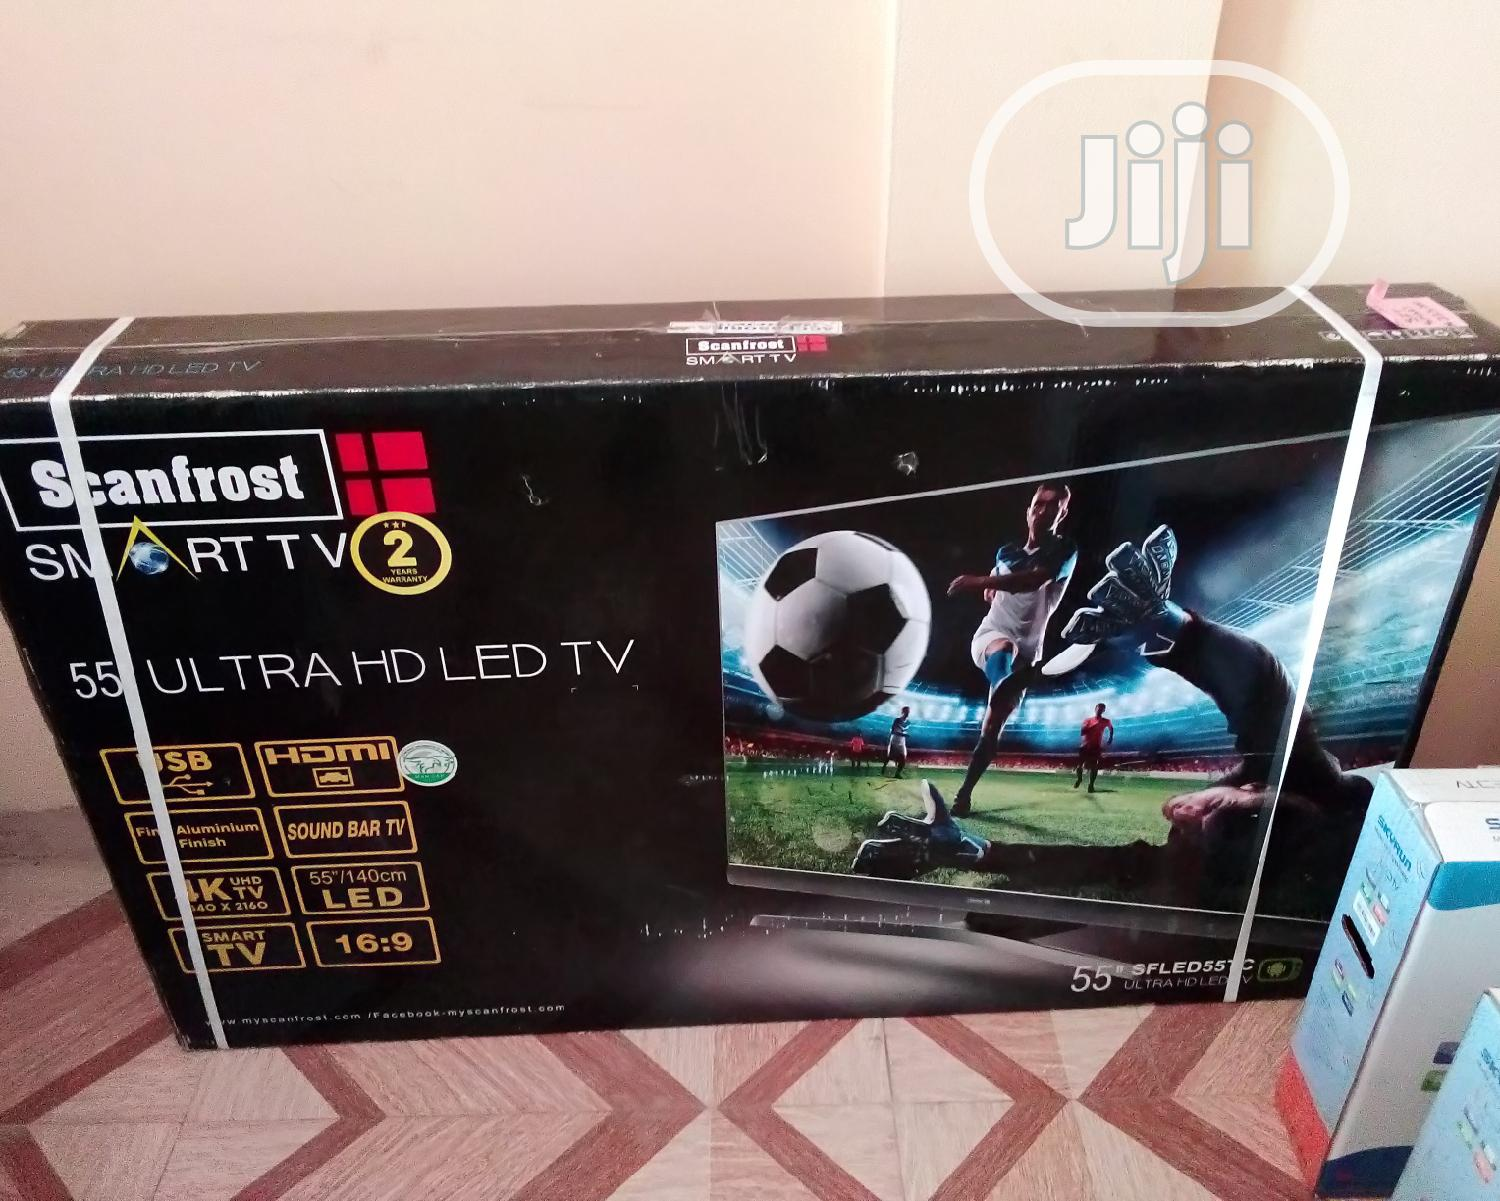 55 Inches Scanfrost Smart Tv